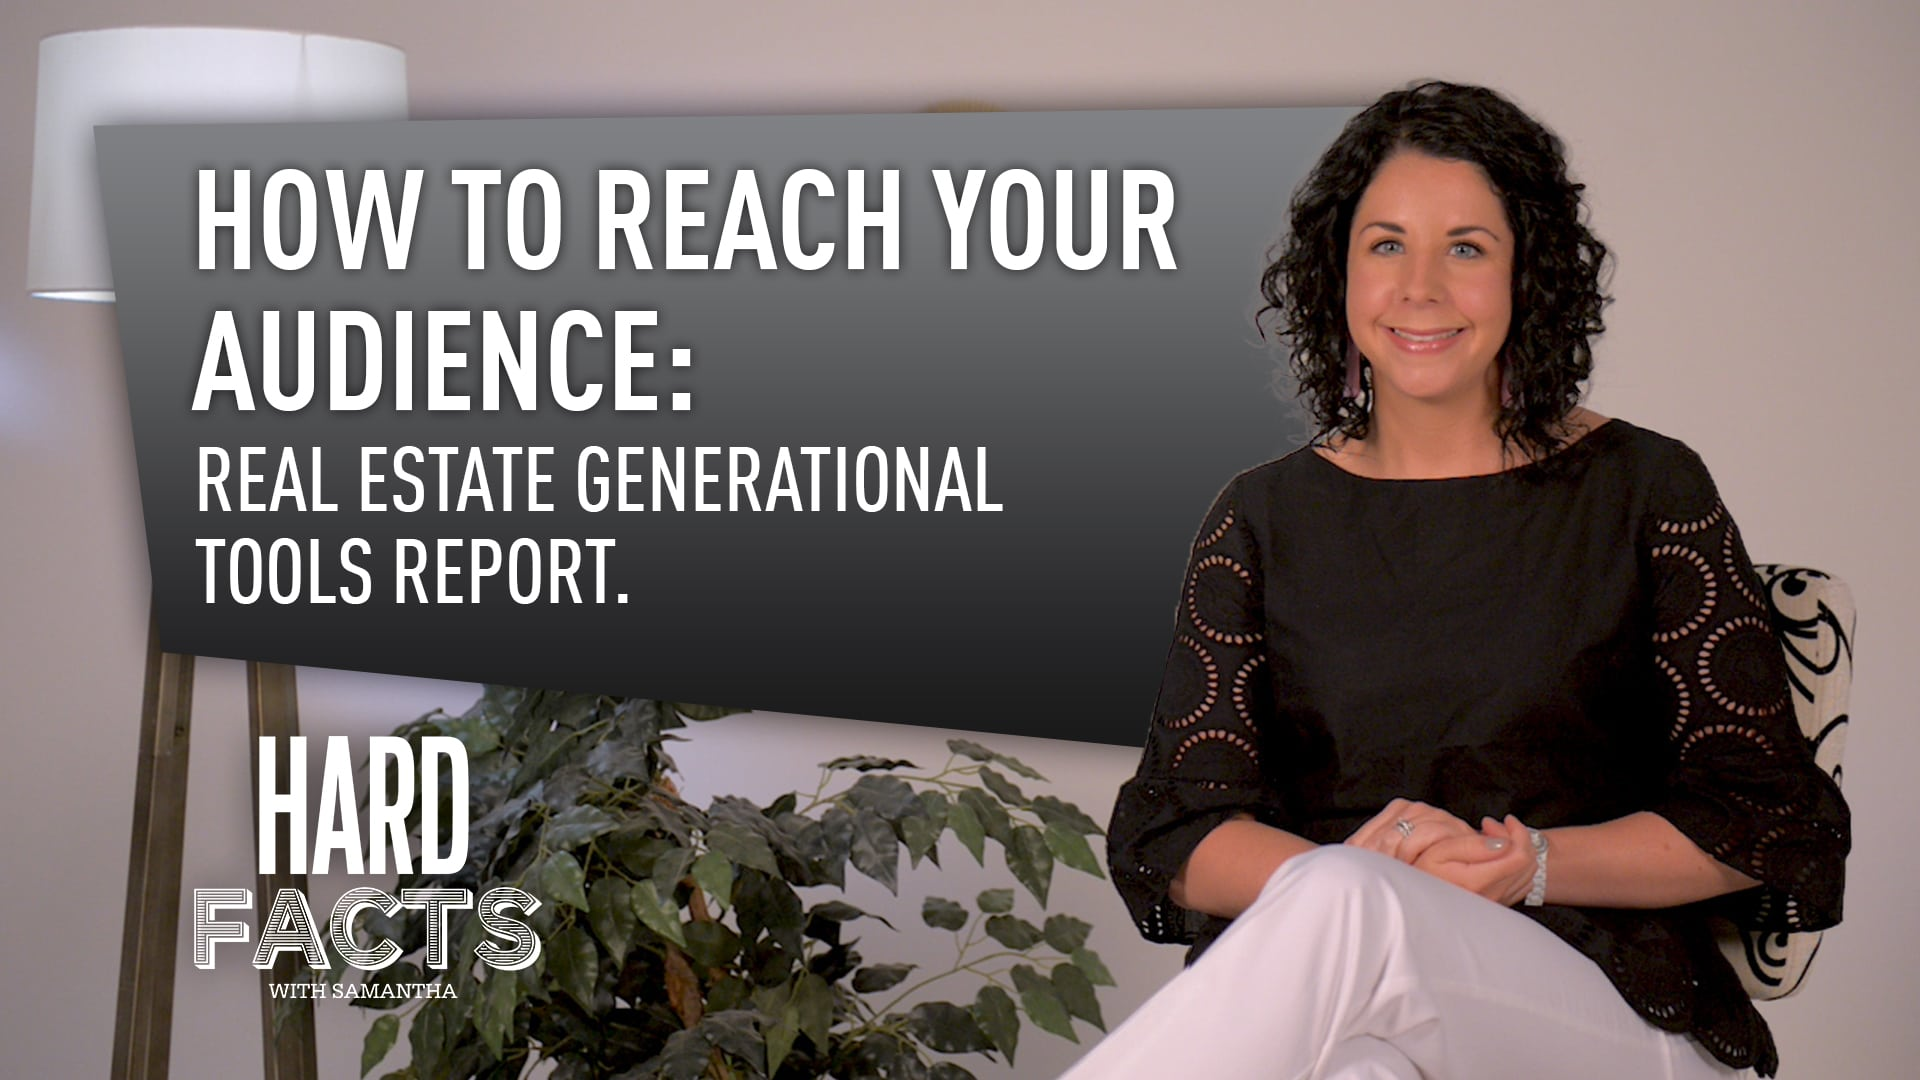 How to Reach Your Audience | Real Estate Generational Tools Report